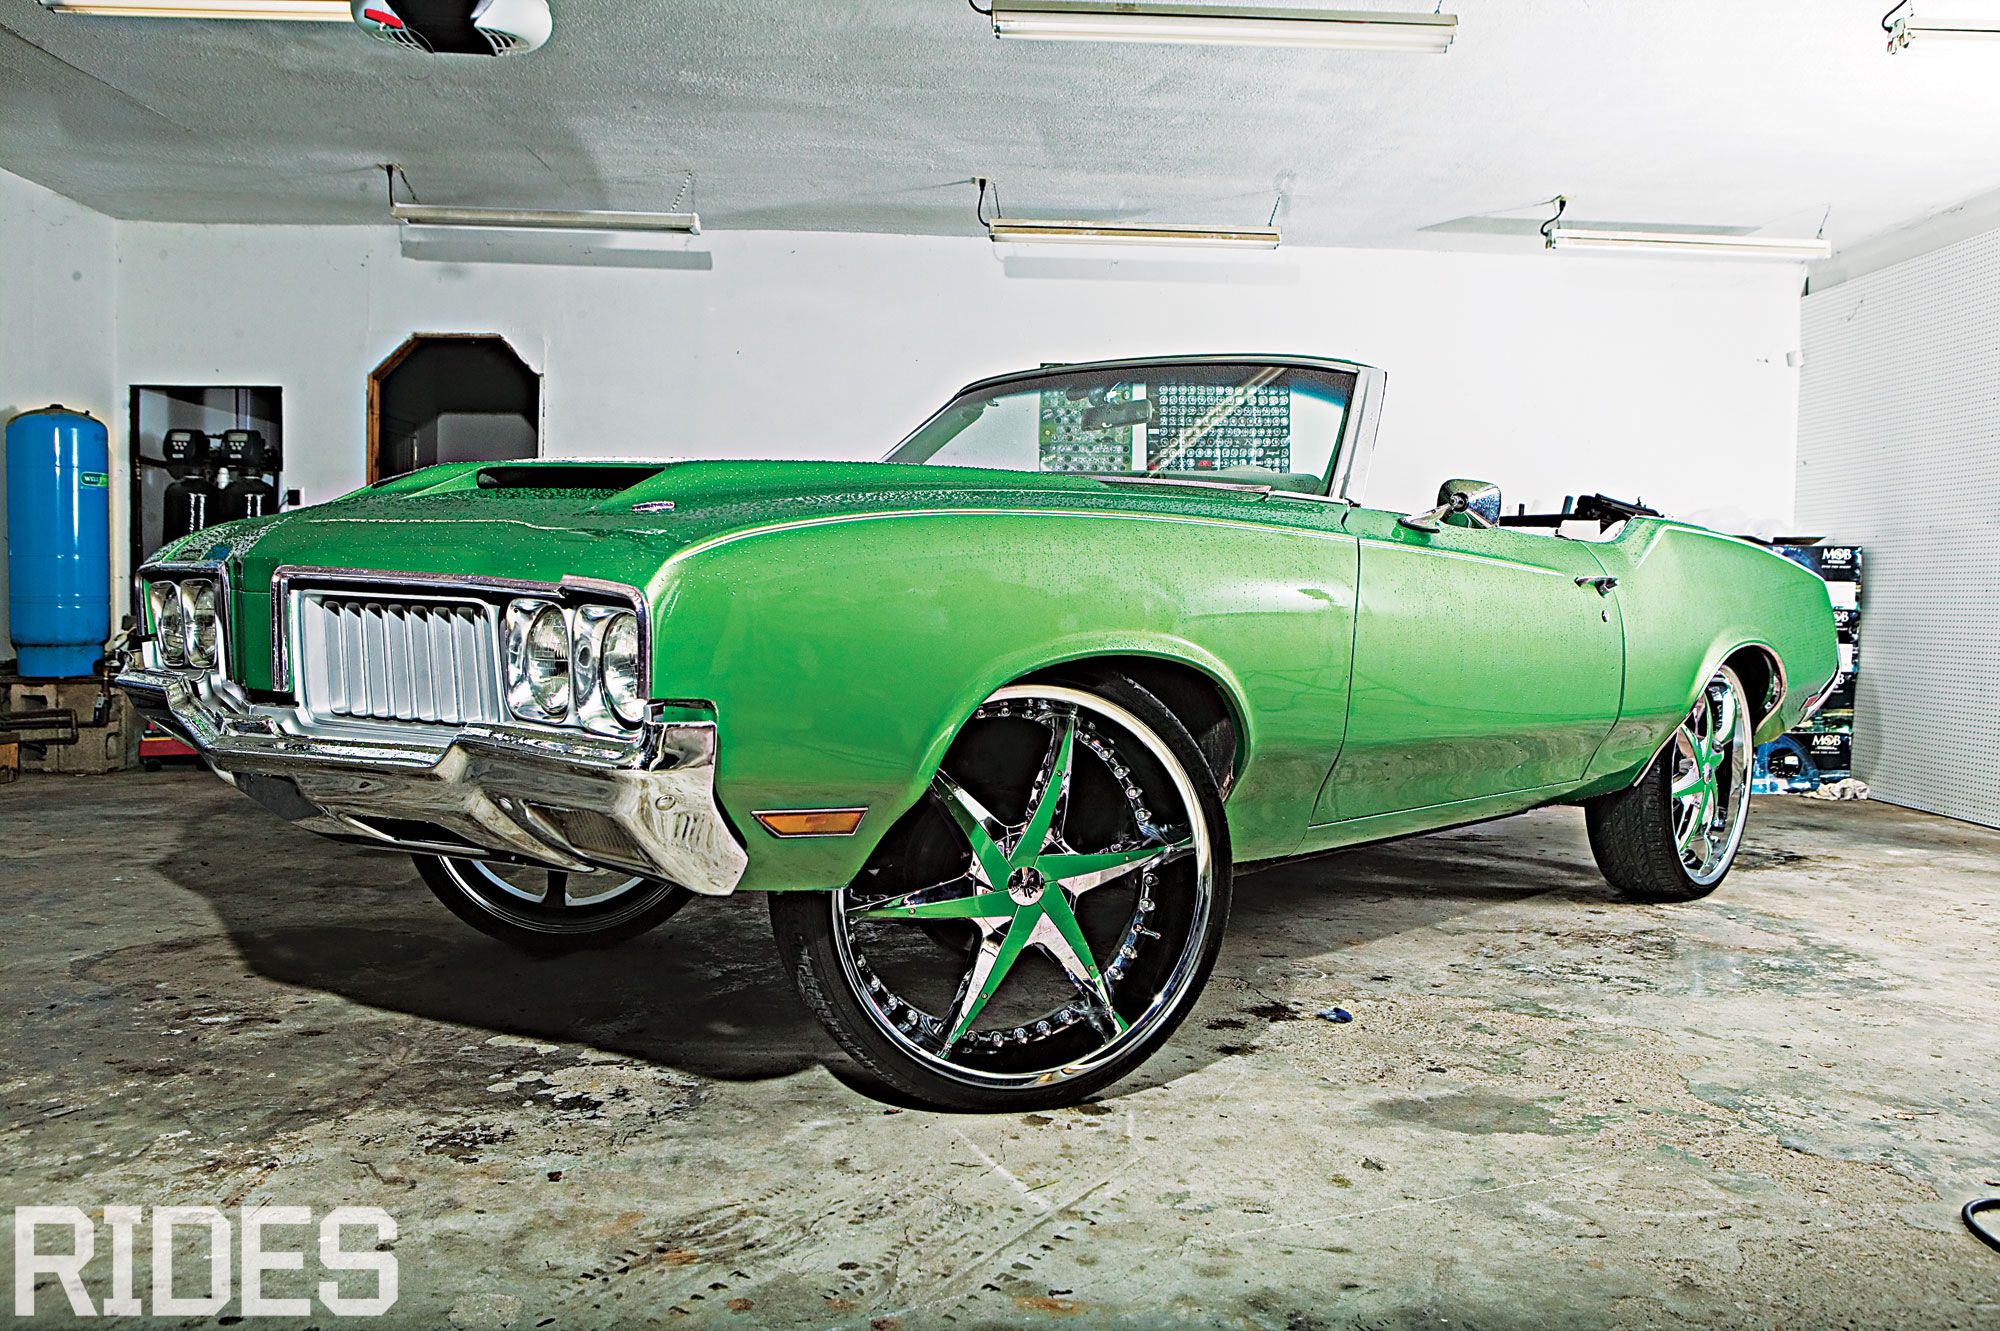 Rides Magazine | Custom Cars, Donks, Rims & Car Culture - Page 47 of 227